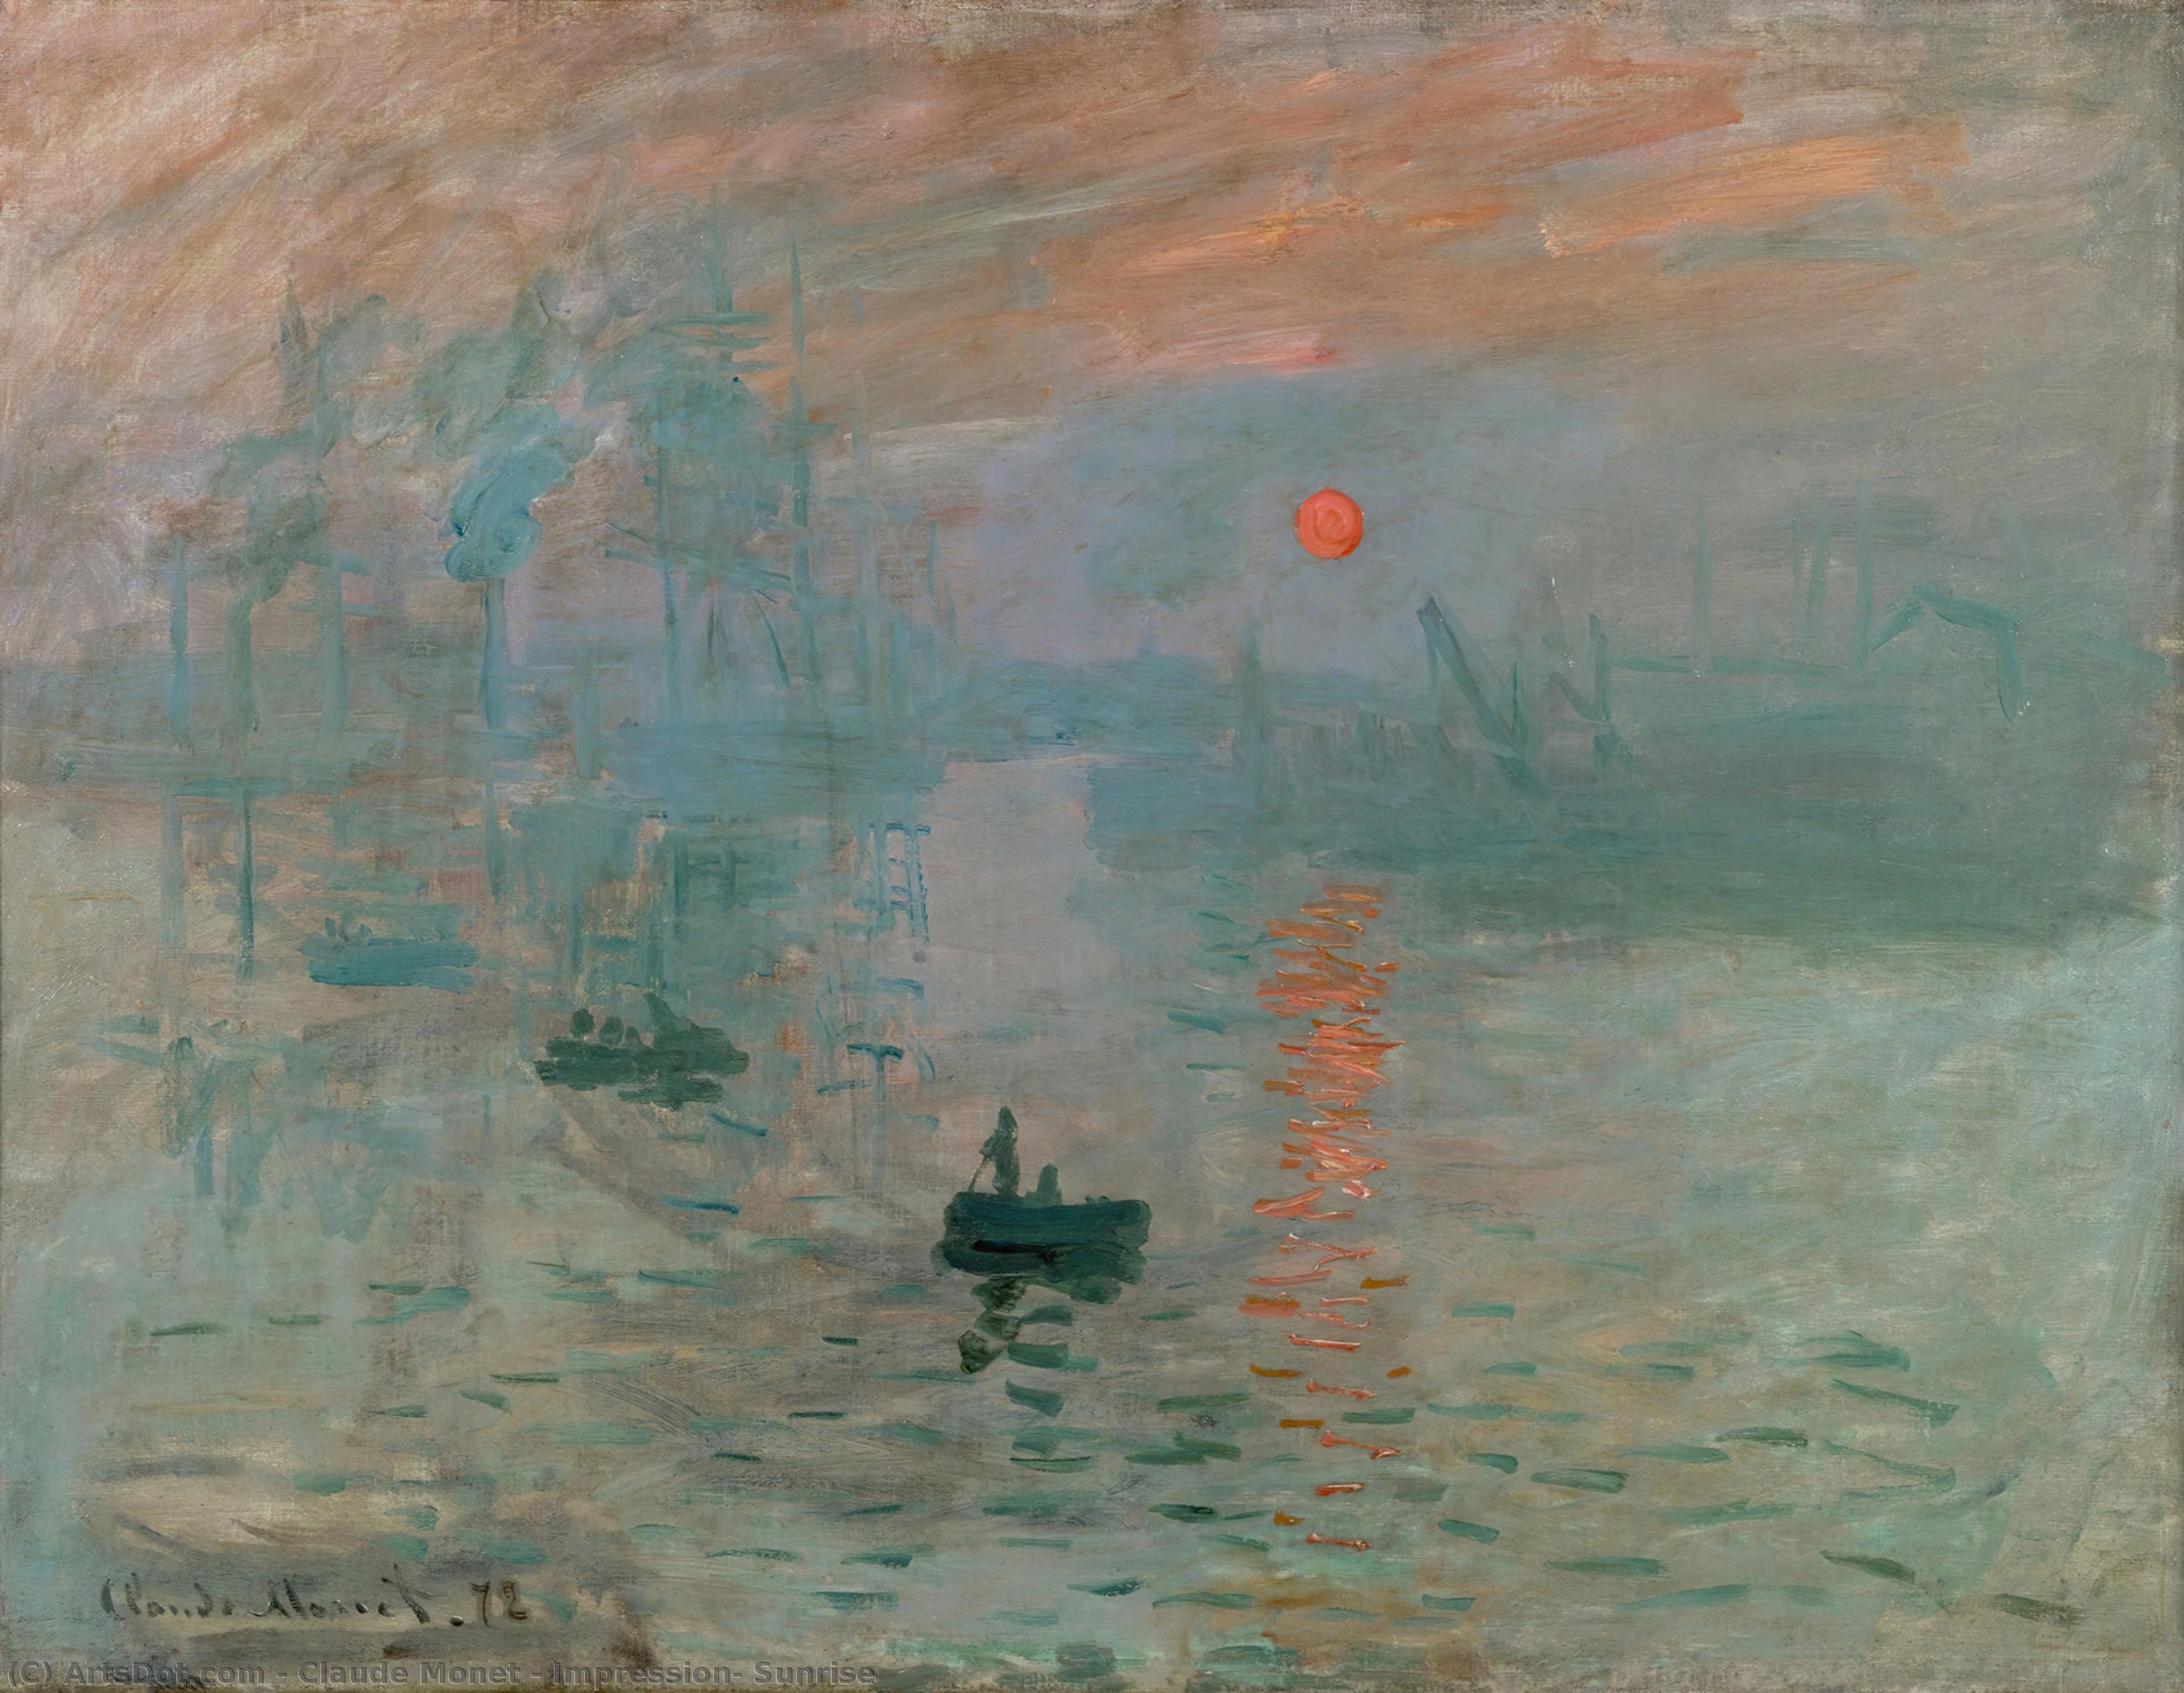 Wikioo.org - The Encyclopedia of Fine Arts - Painting, Artwork by Claude Monet - Impression, Sunrise